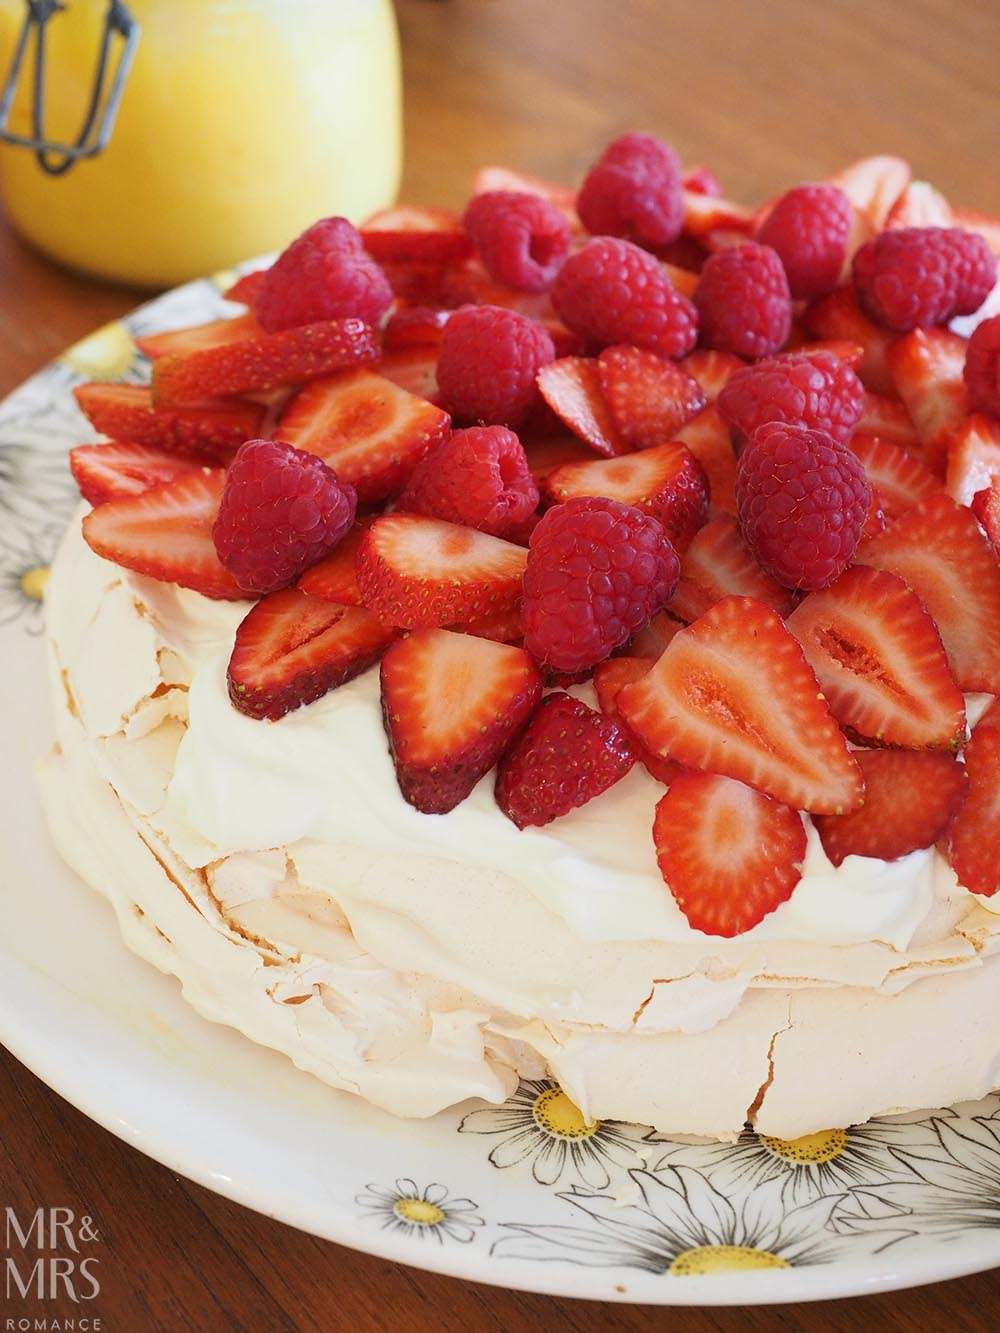 Easy pavlova recipe - pav and strawberries